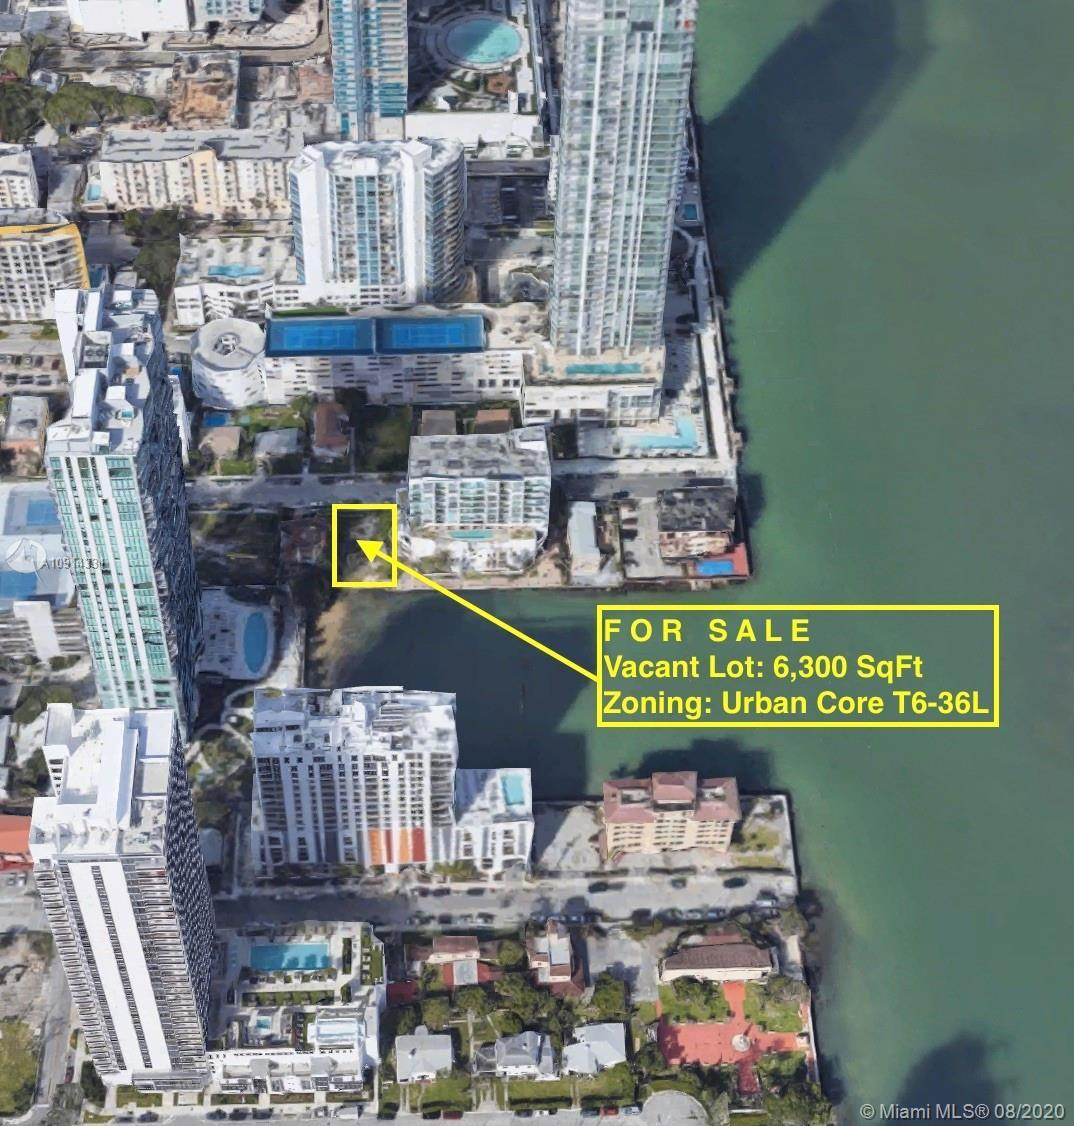 *PRIME WATERFRONT DEVELOPMENT OPPORTUNITY IN EDGEWATER / MIAMI* WATERFRONT VACANT LOT 6,300SqFt ON B